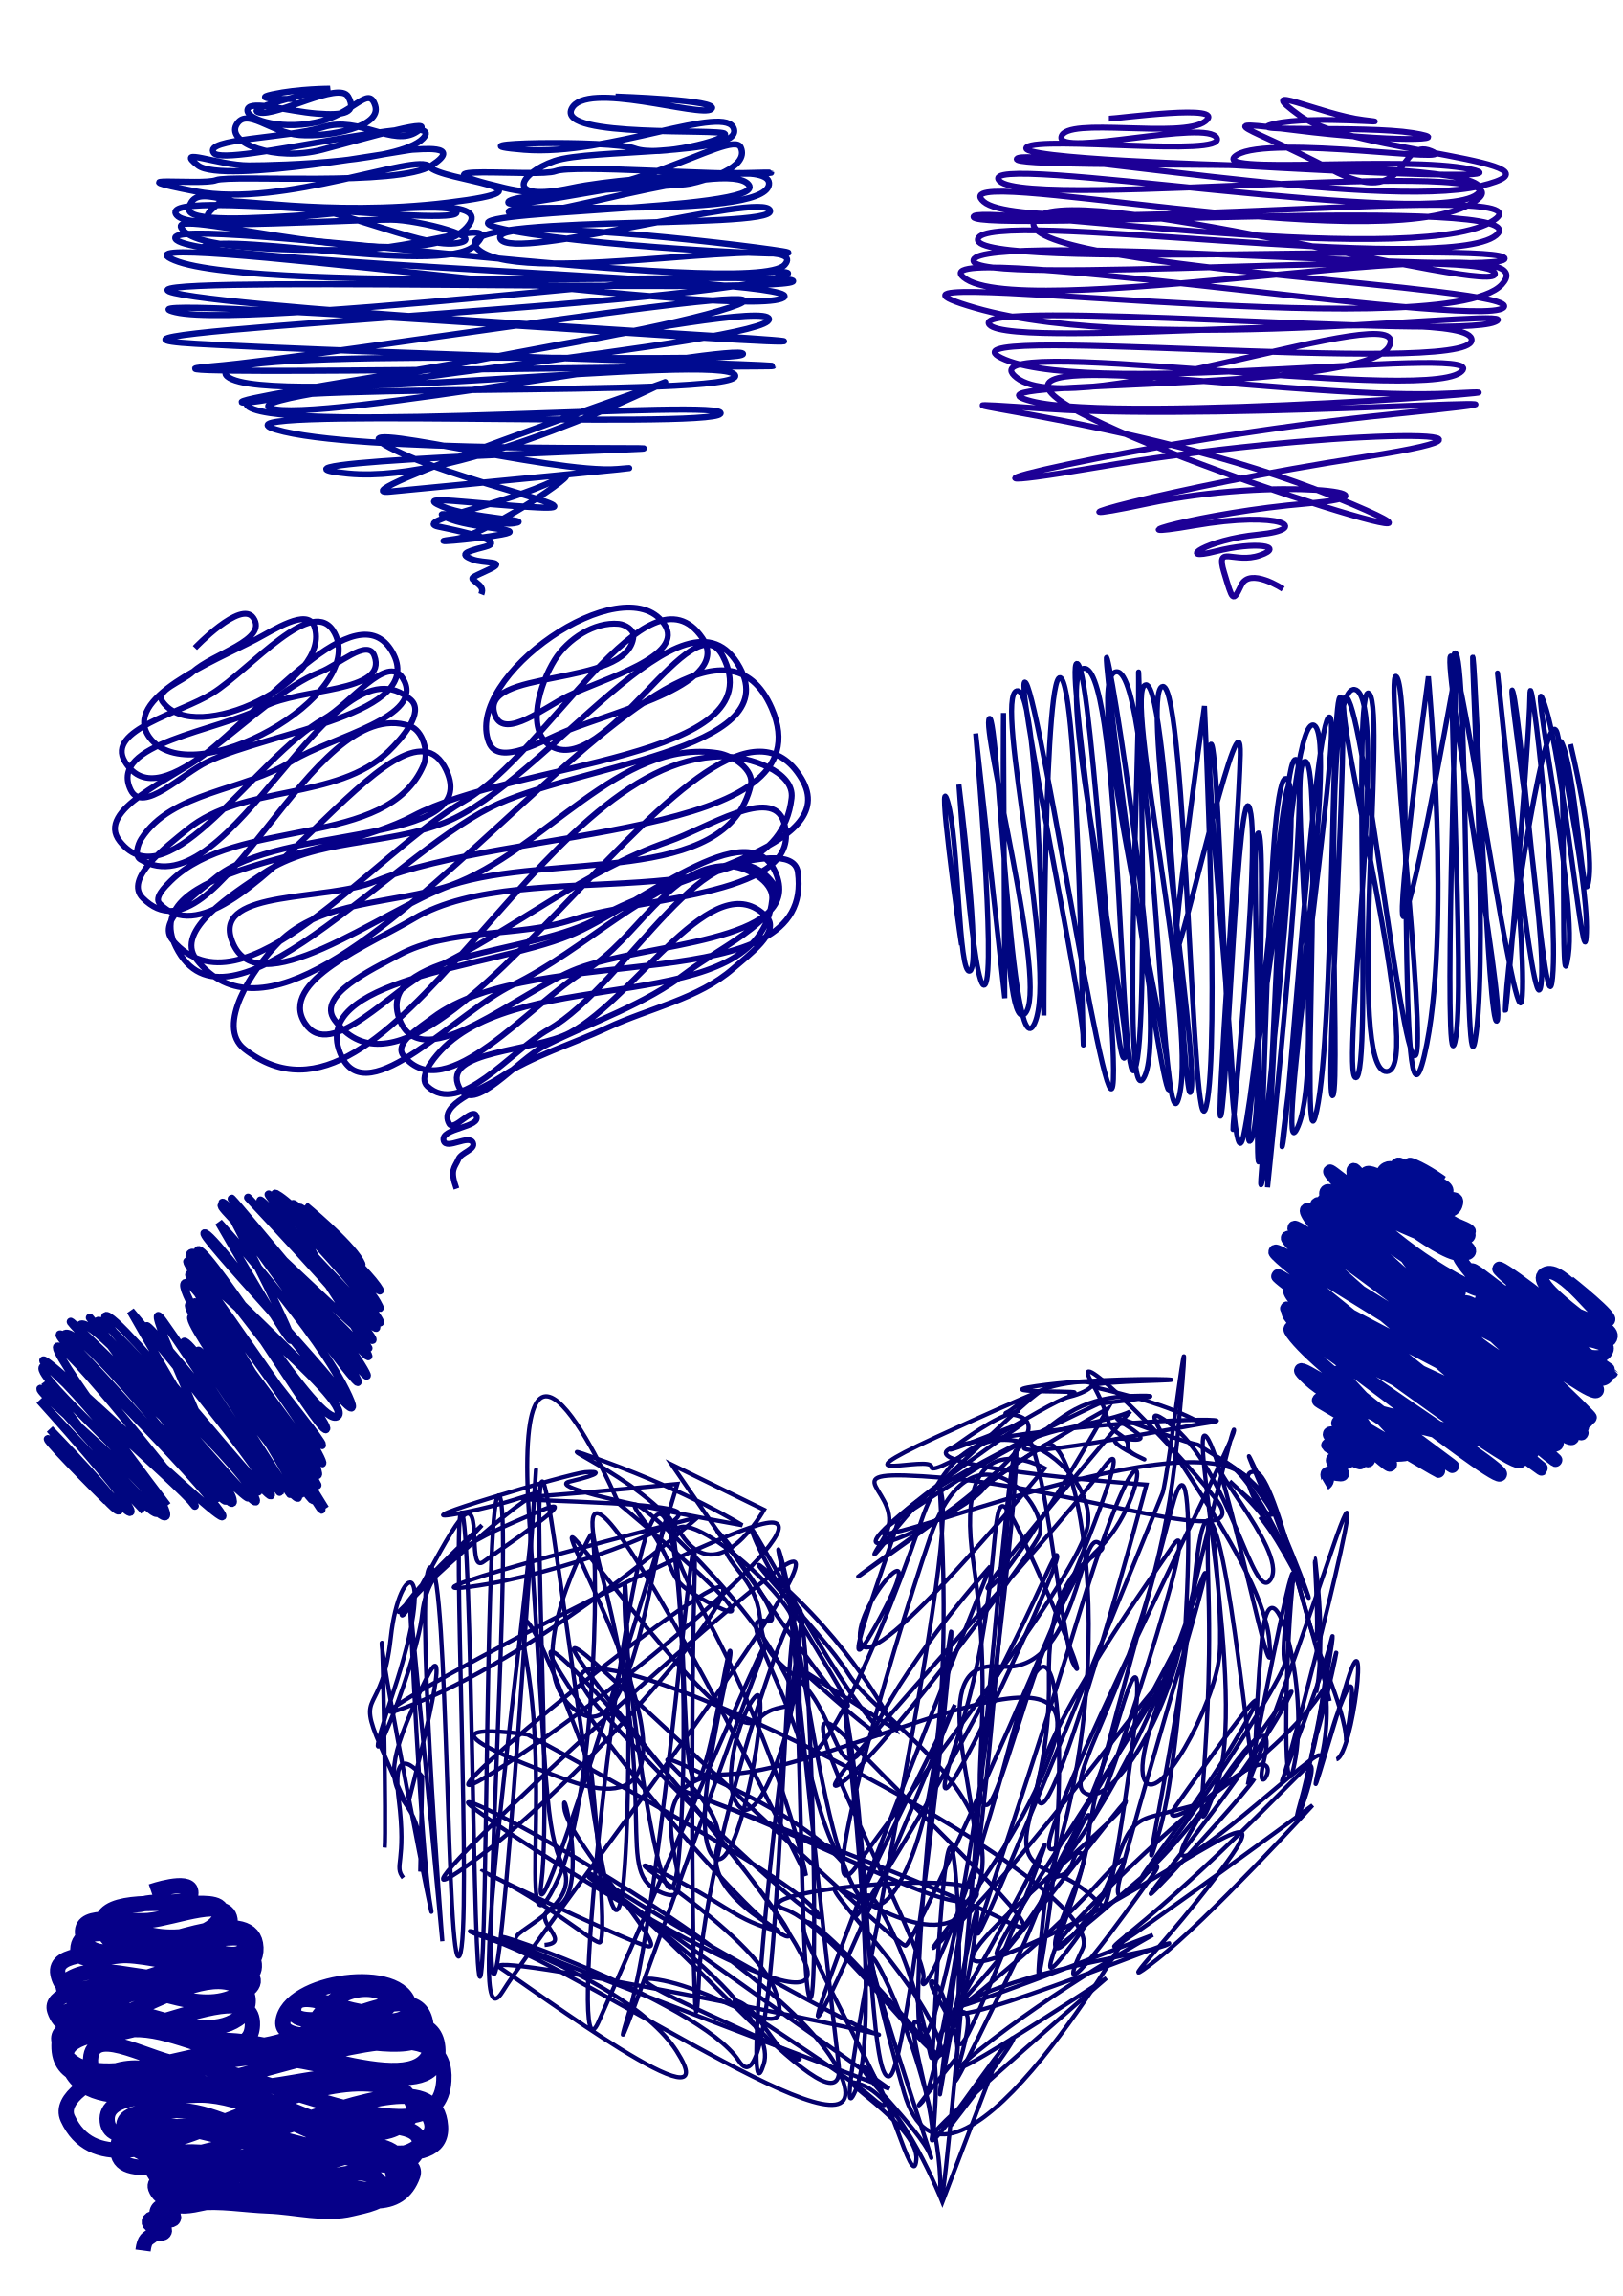 Drawn heart clipart black and white download Clipart - blue hand drawn Heart black and white download